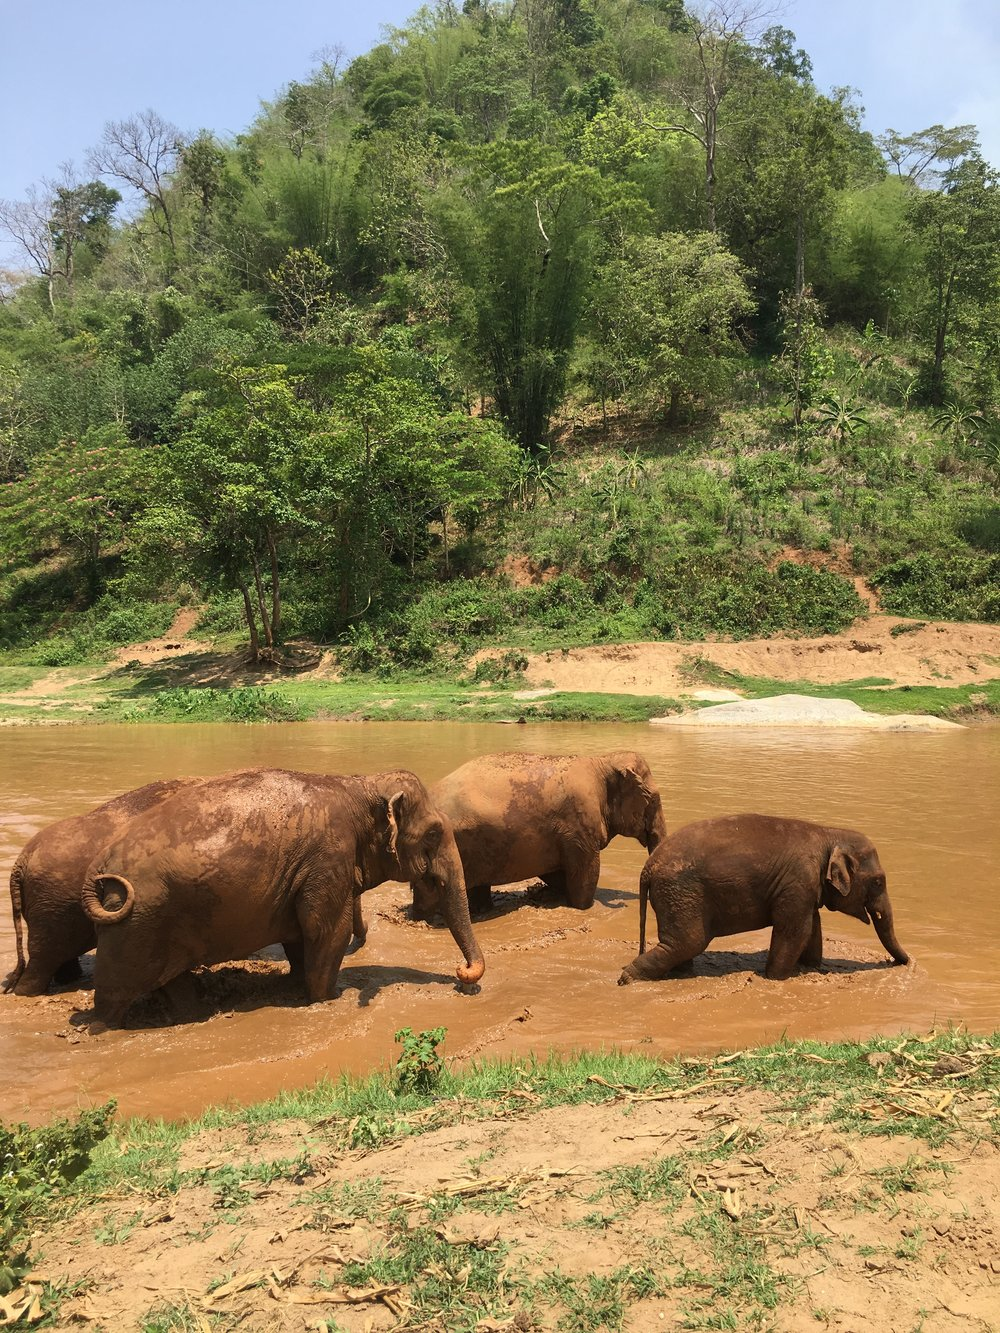 When you join the elephants in the river, be advised that the muddy water can stain your clothes